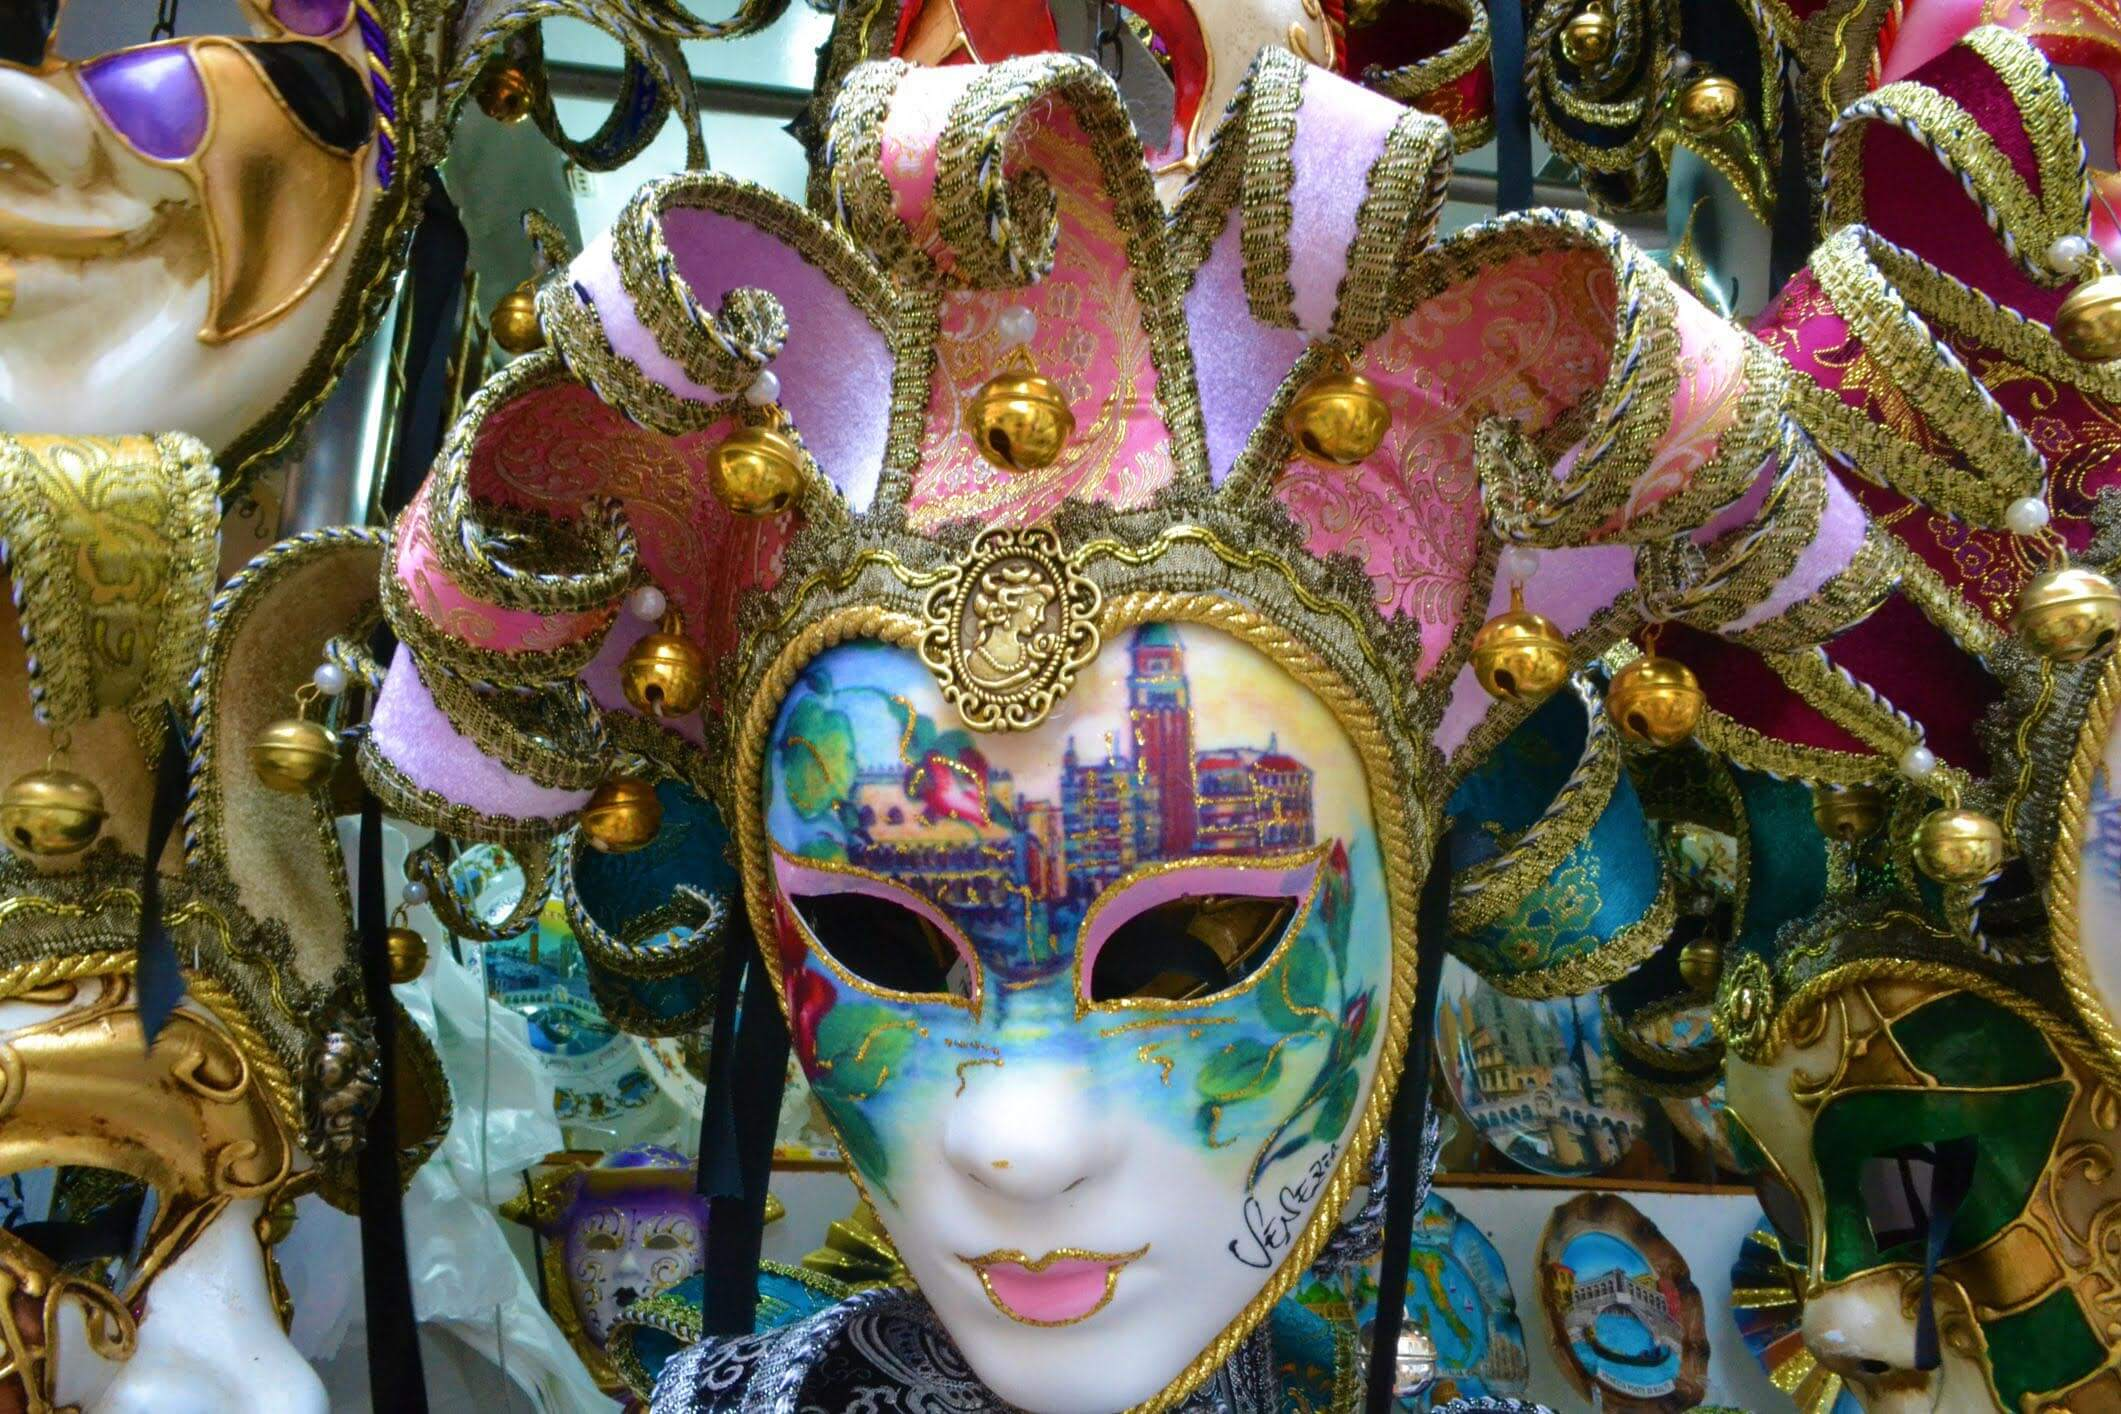 Colourful Venetian masks